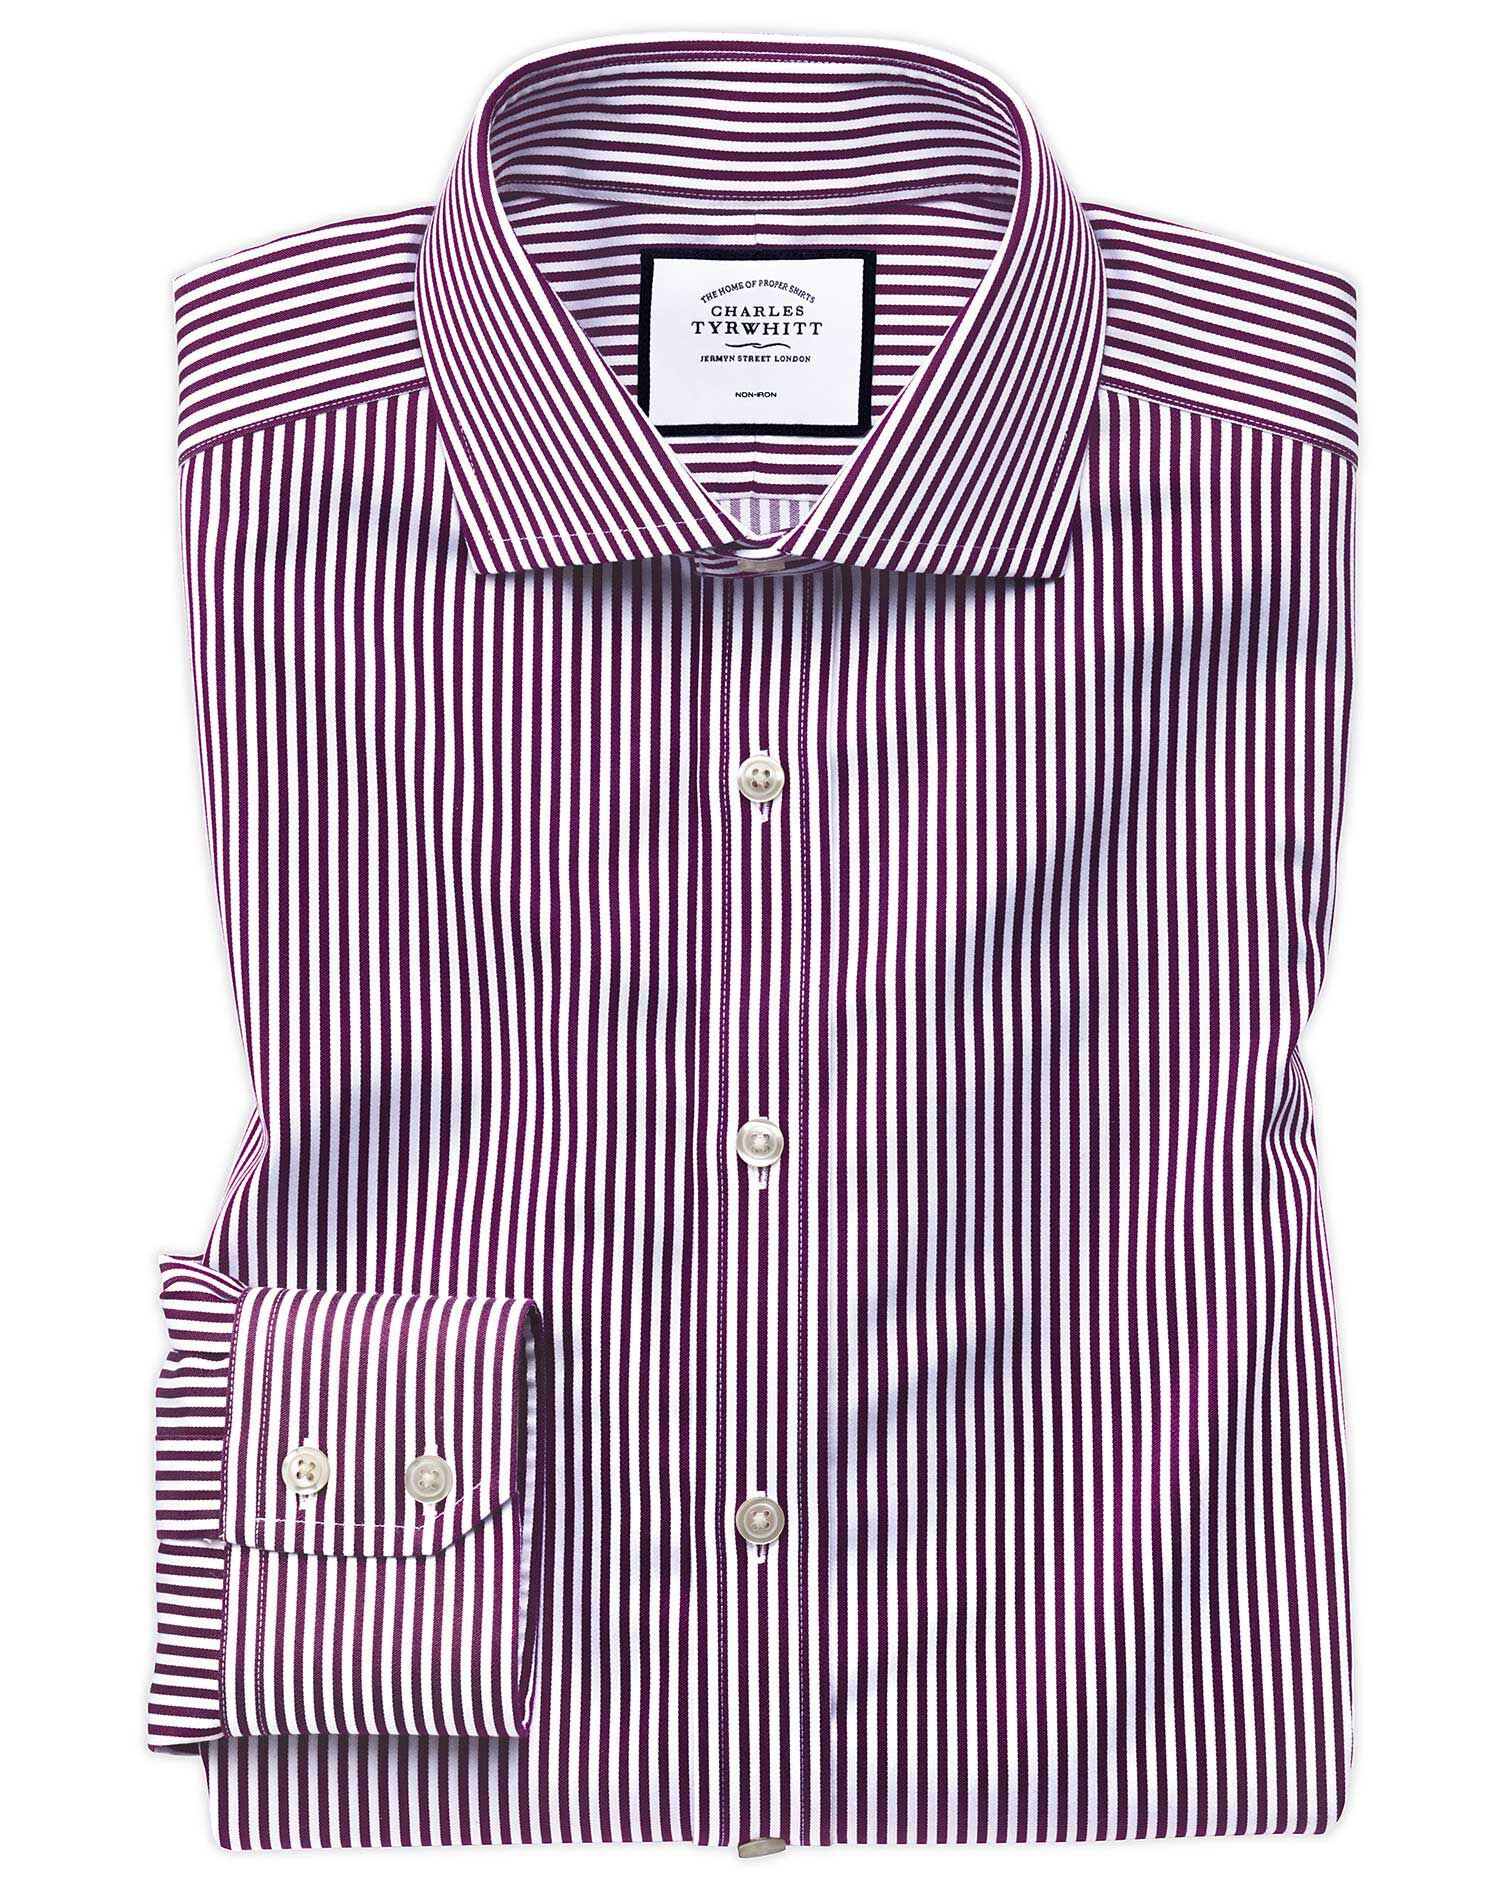 Extra Slim Fit Non-Iron Cutaway Collar Berry Twill Stripe Cotton Formal Shirt Single Cuff Size 15.5/